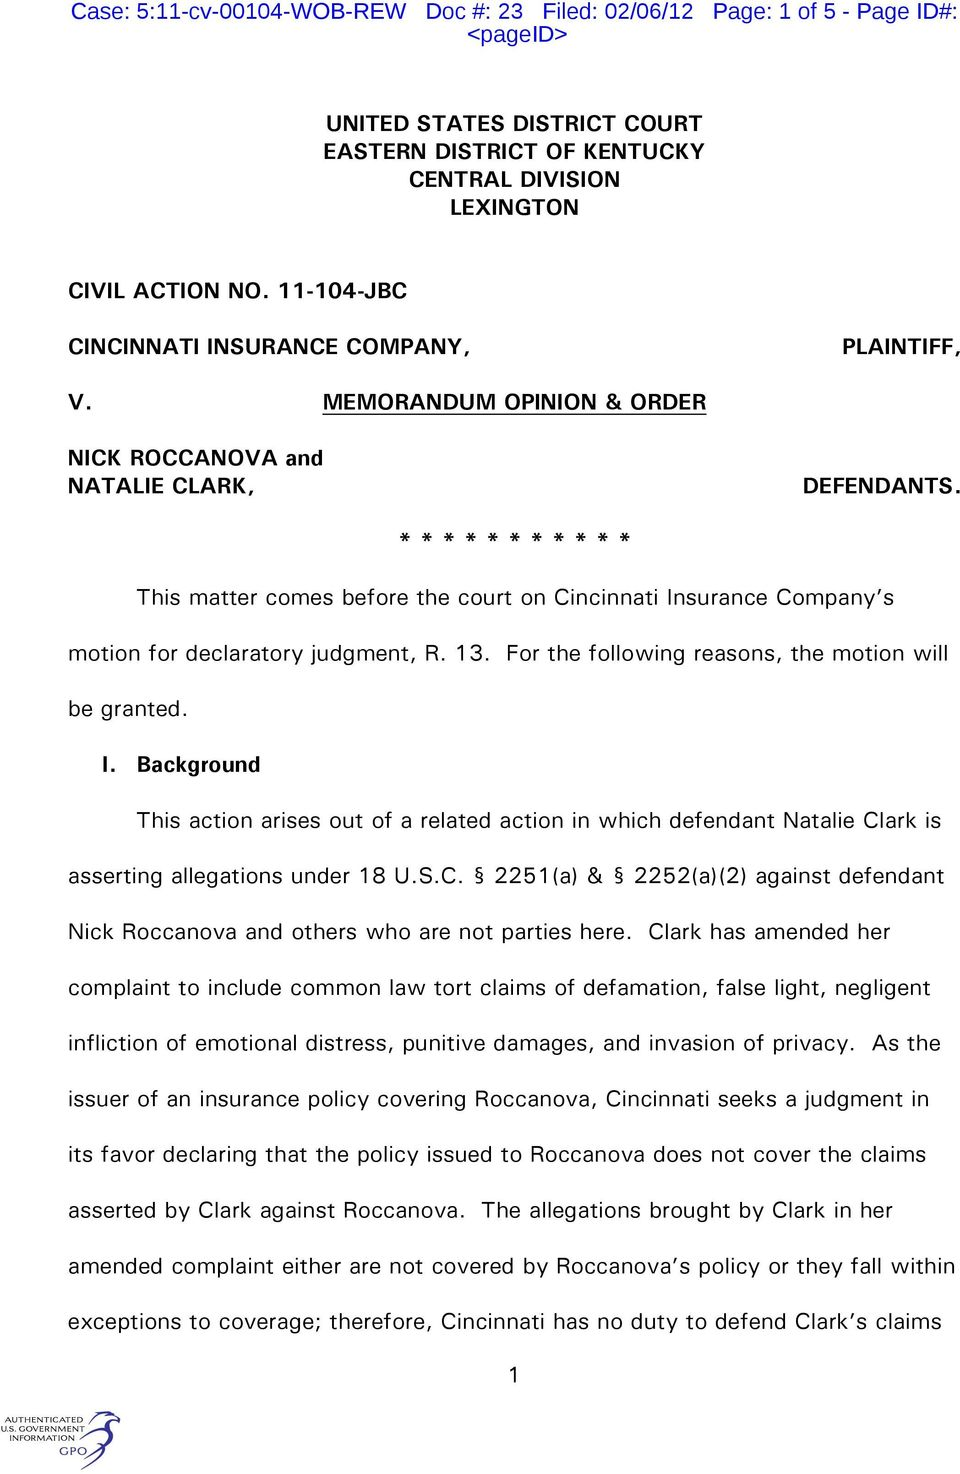 * * * * * * * * * * * This matter comes before the court on Cincinnati Insurance Company s motion for declaratory judgment, R. 13. For the following reasons, the motion will be granted. I. Background This action arises out of a related action in which defendant Natalie Clark is asserting allegations under 18 U.